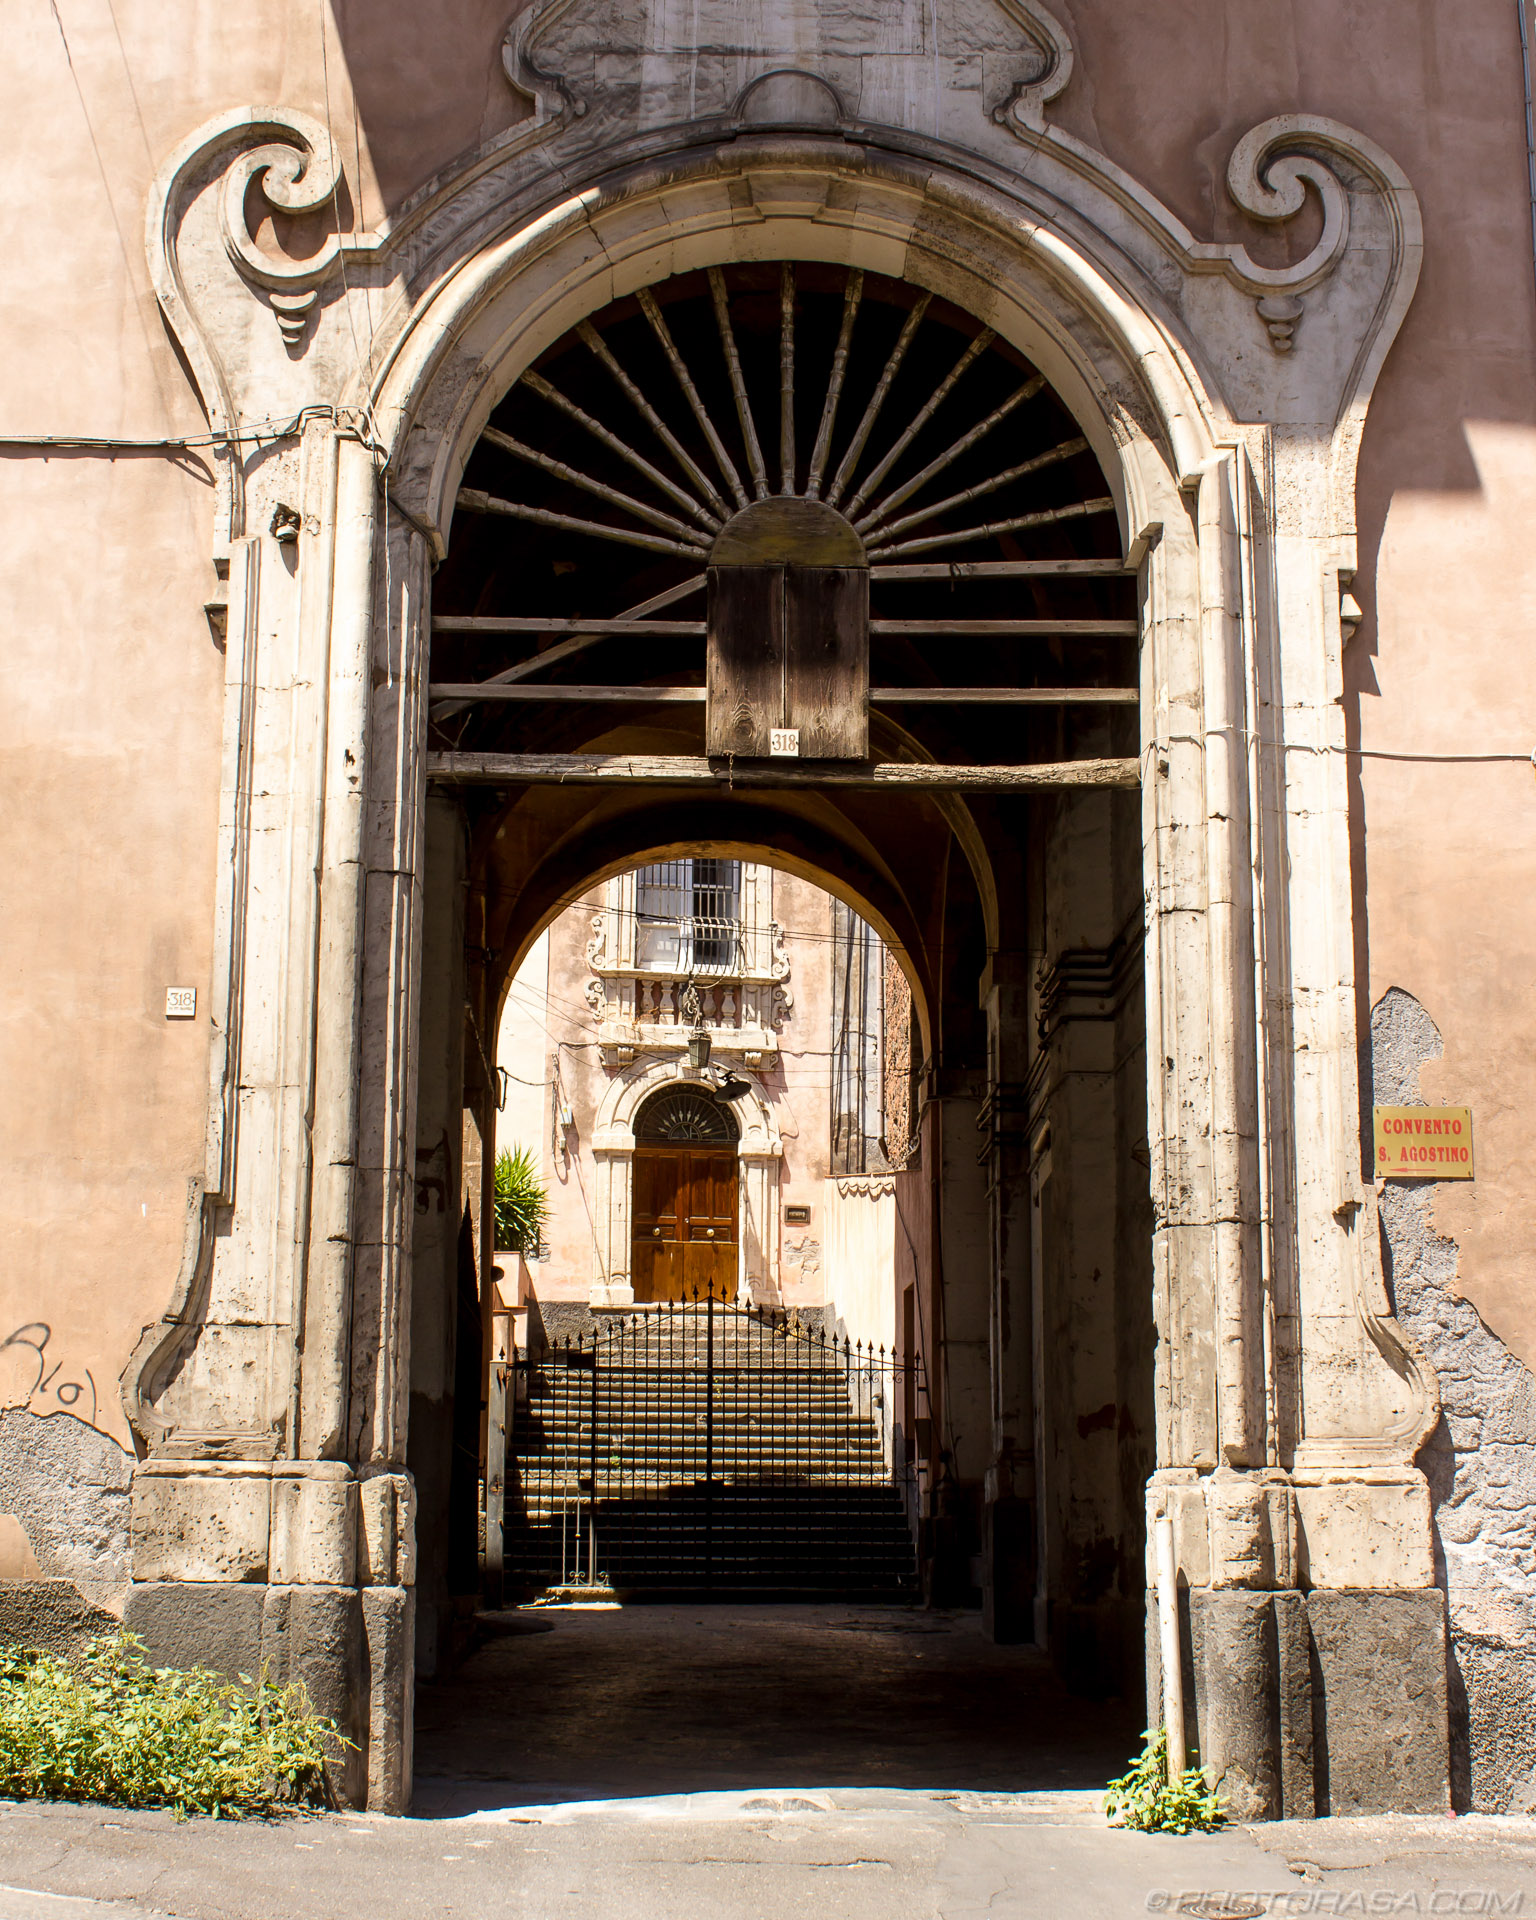 http://photorasa.com/catania/islamic-entrance-in-catania/